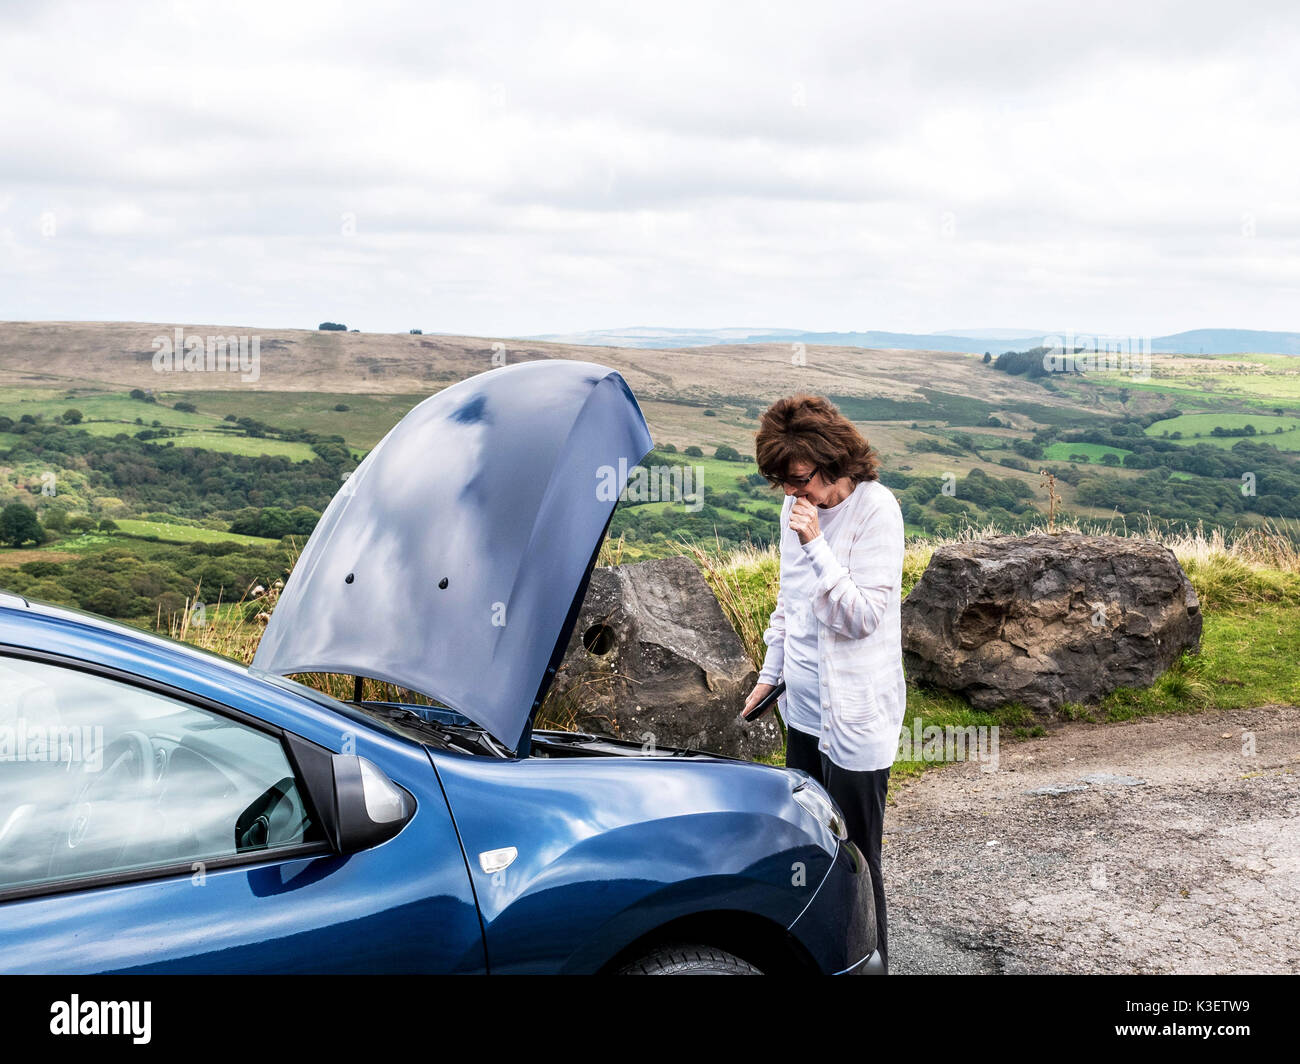 Mature lady looking at car engine after car breakdown in remote countryside. - Stock Image